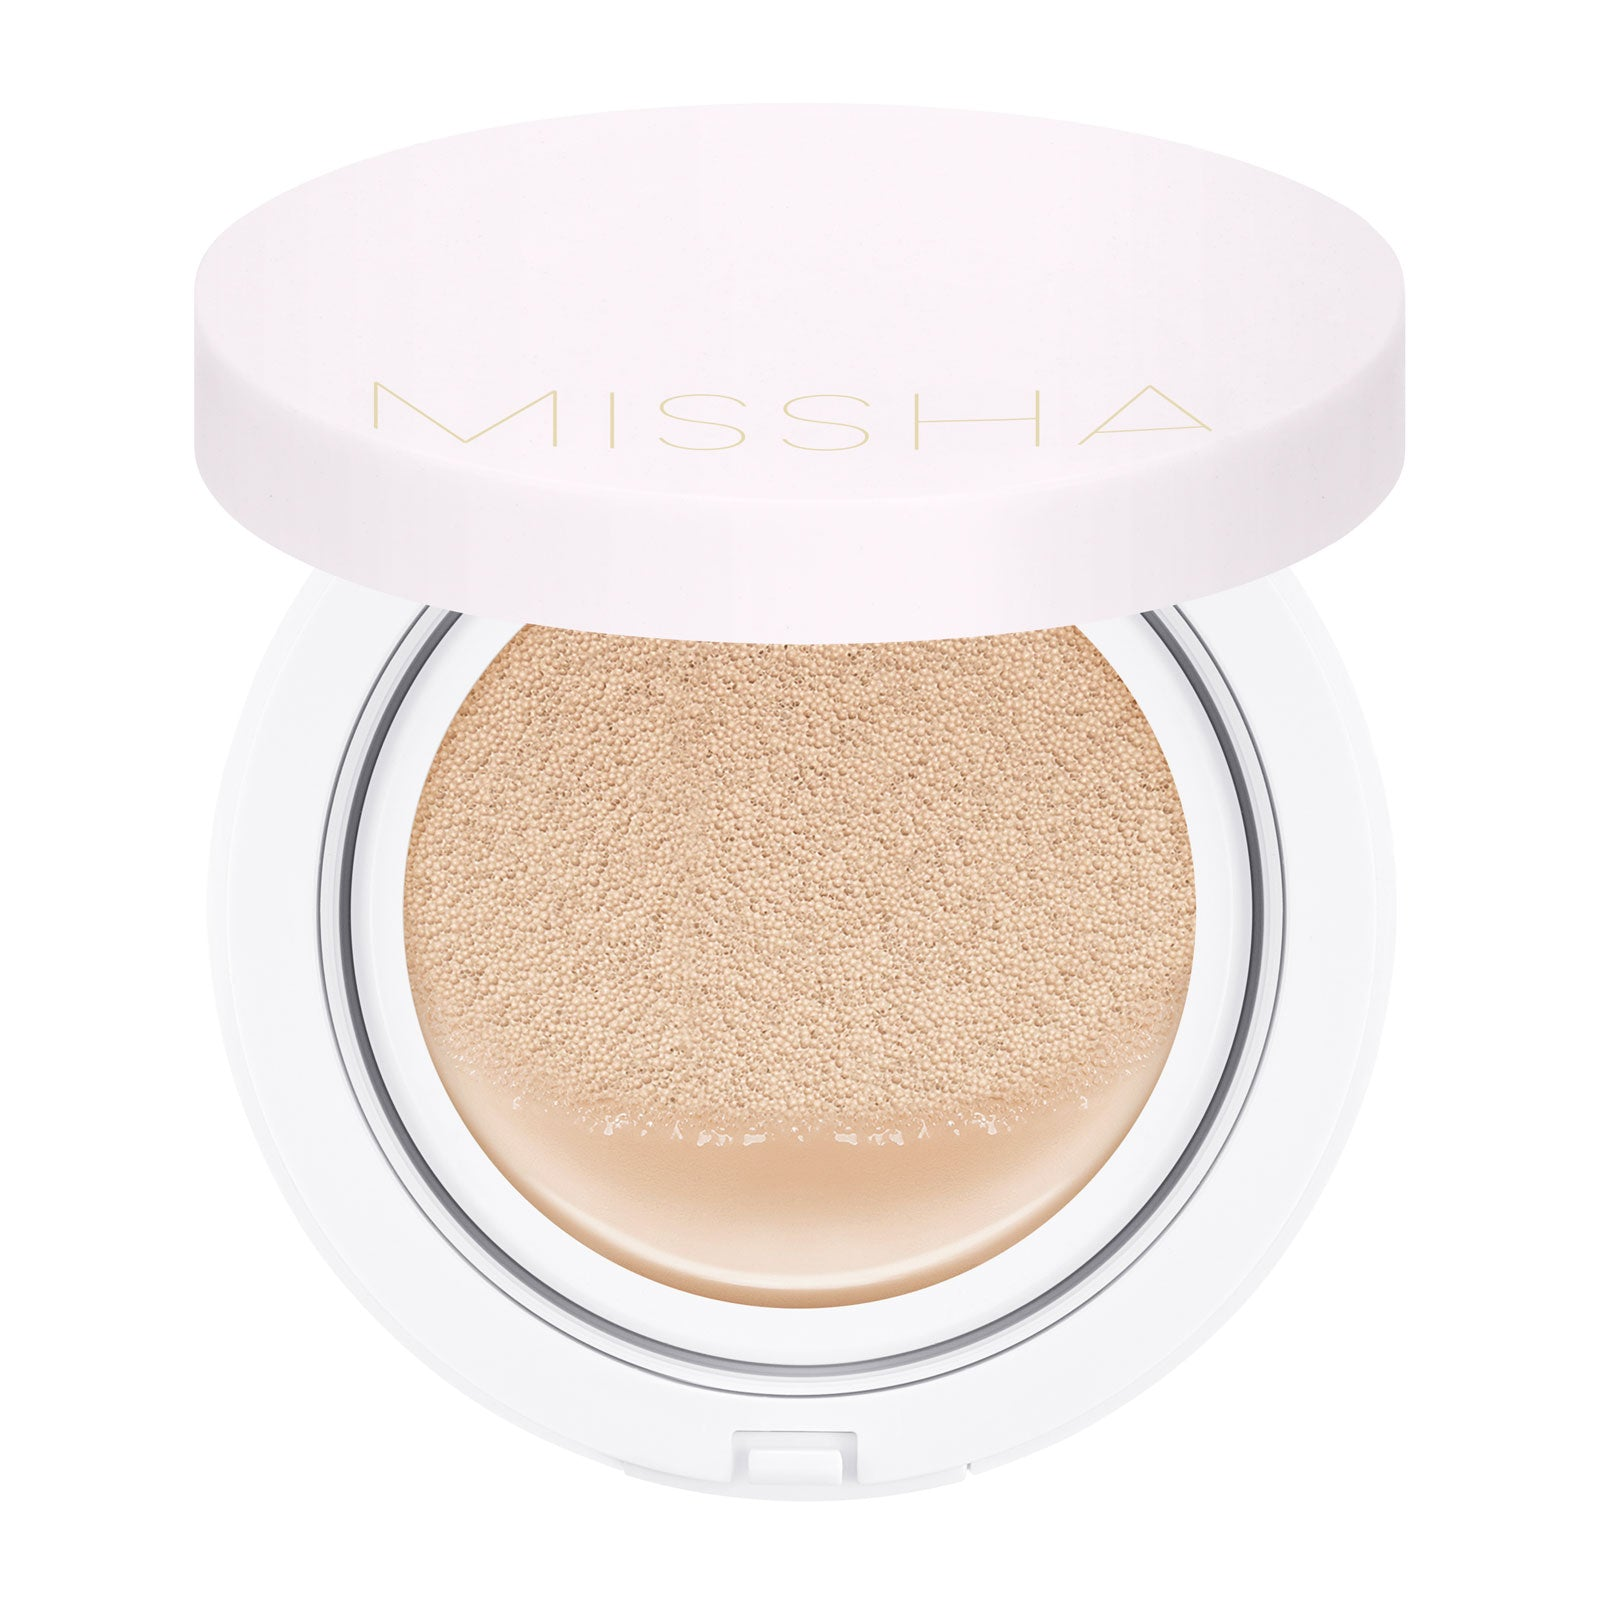 MISSHA Signature Essence Cushion Intensive Cover SPF50 PA+++